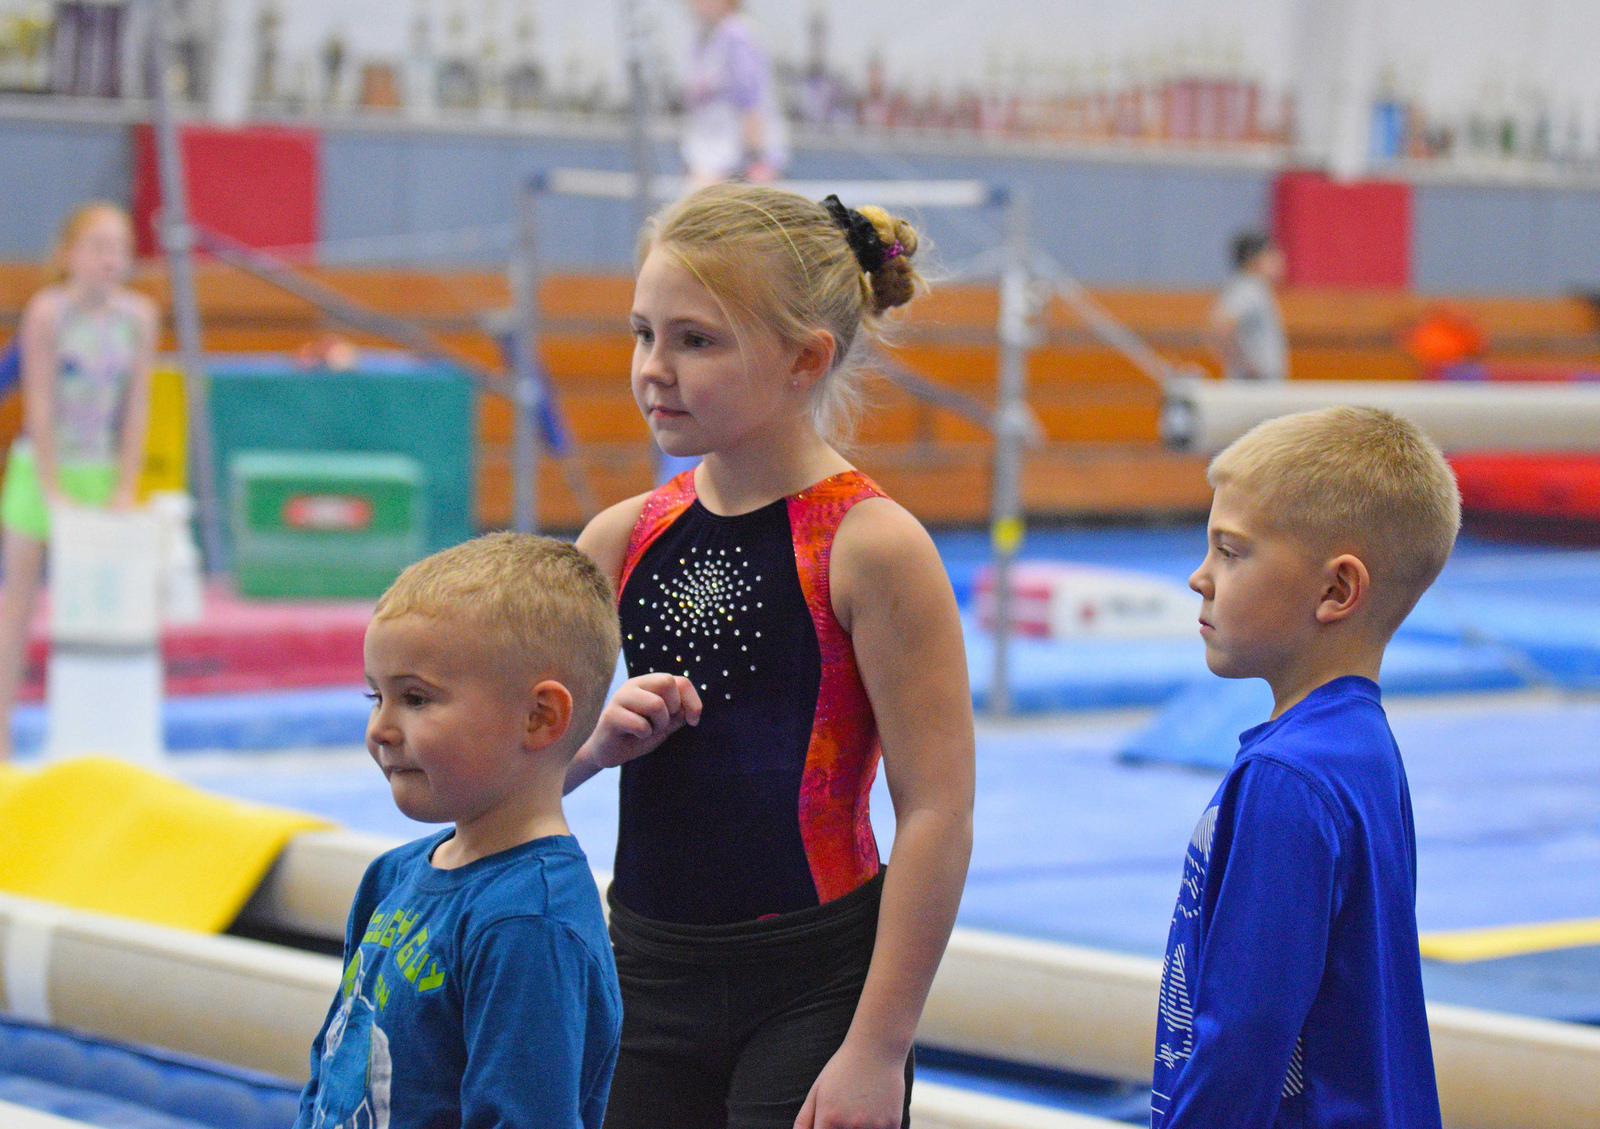 Gymnastics for Toddlers